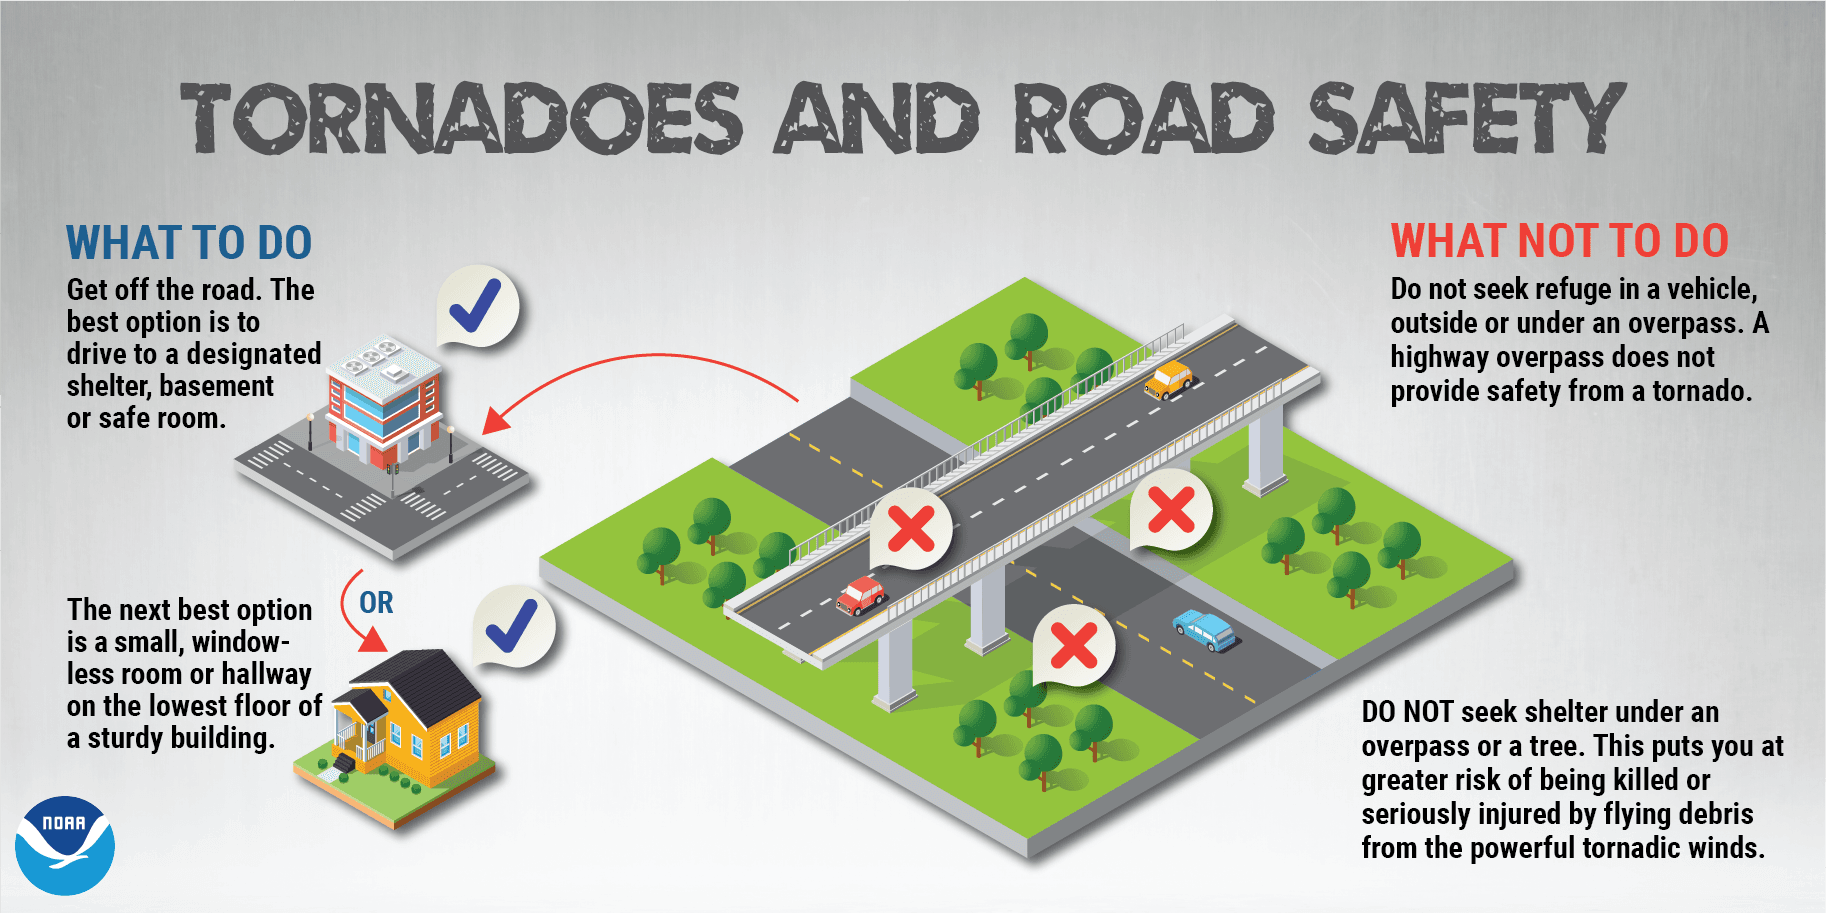 Info graphic of tornado and road safety, get off the road and do not seek refuge under an overpass.